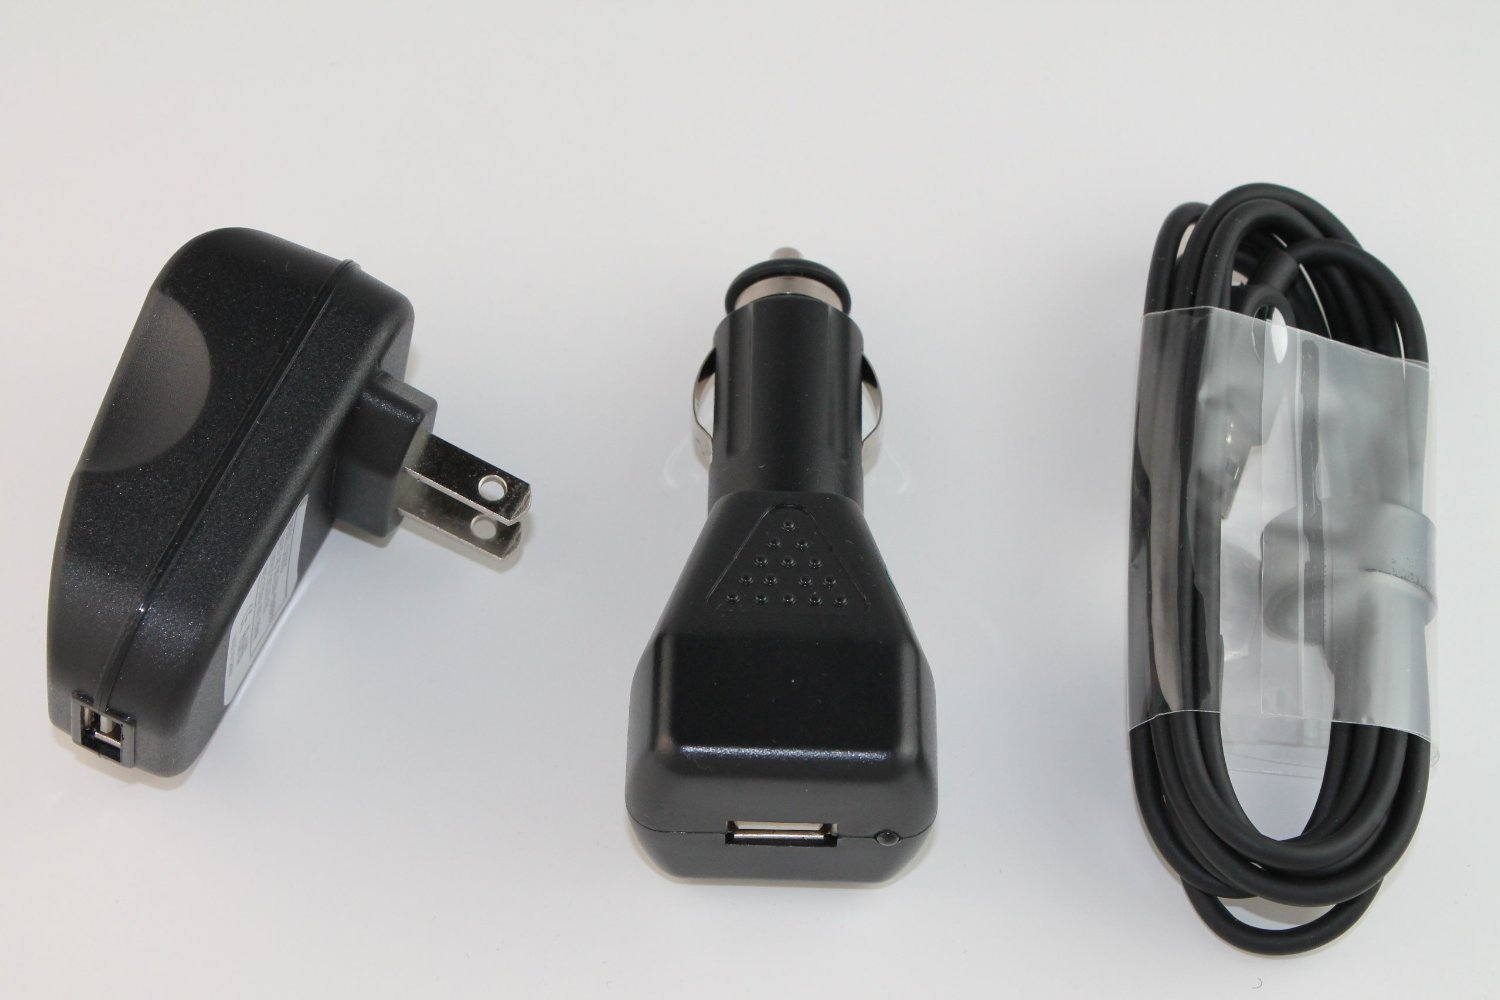 MegaPlus Car Charger, Travel Wall Charger and Micro USB Detachable Cable  For Asus VivoTab Smart ME400 Tablet Series Models: Asus VivoTab Smart  ME400,